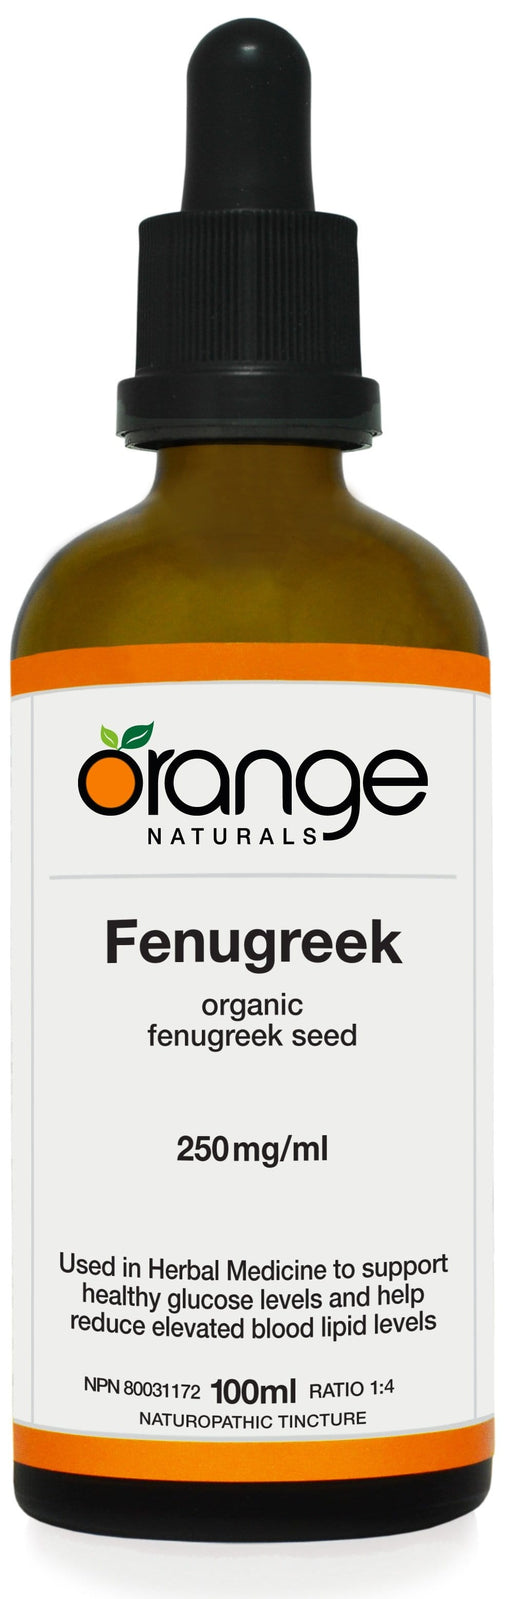 Orange Naturals Fenugreek